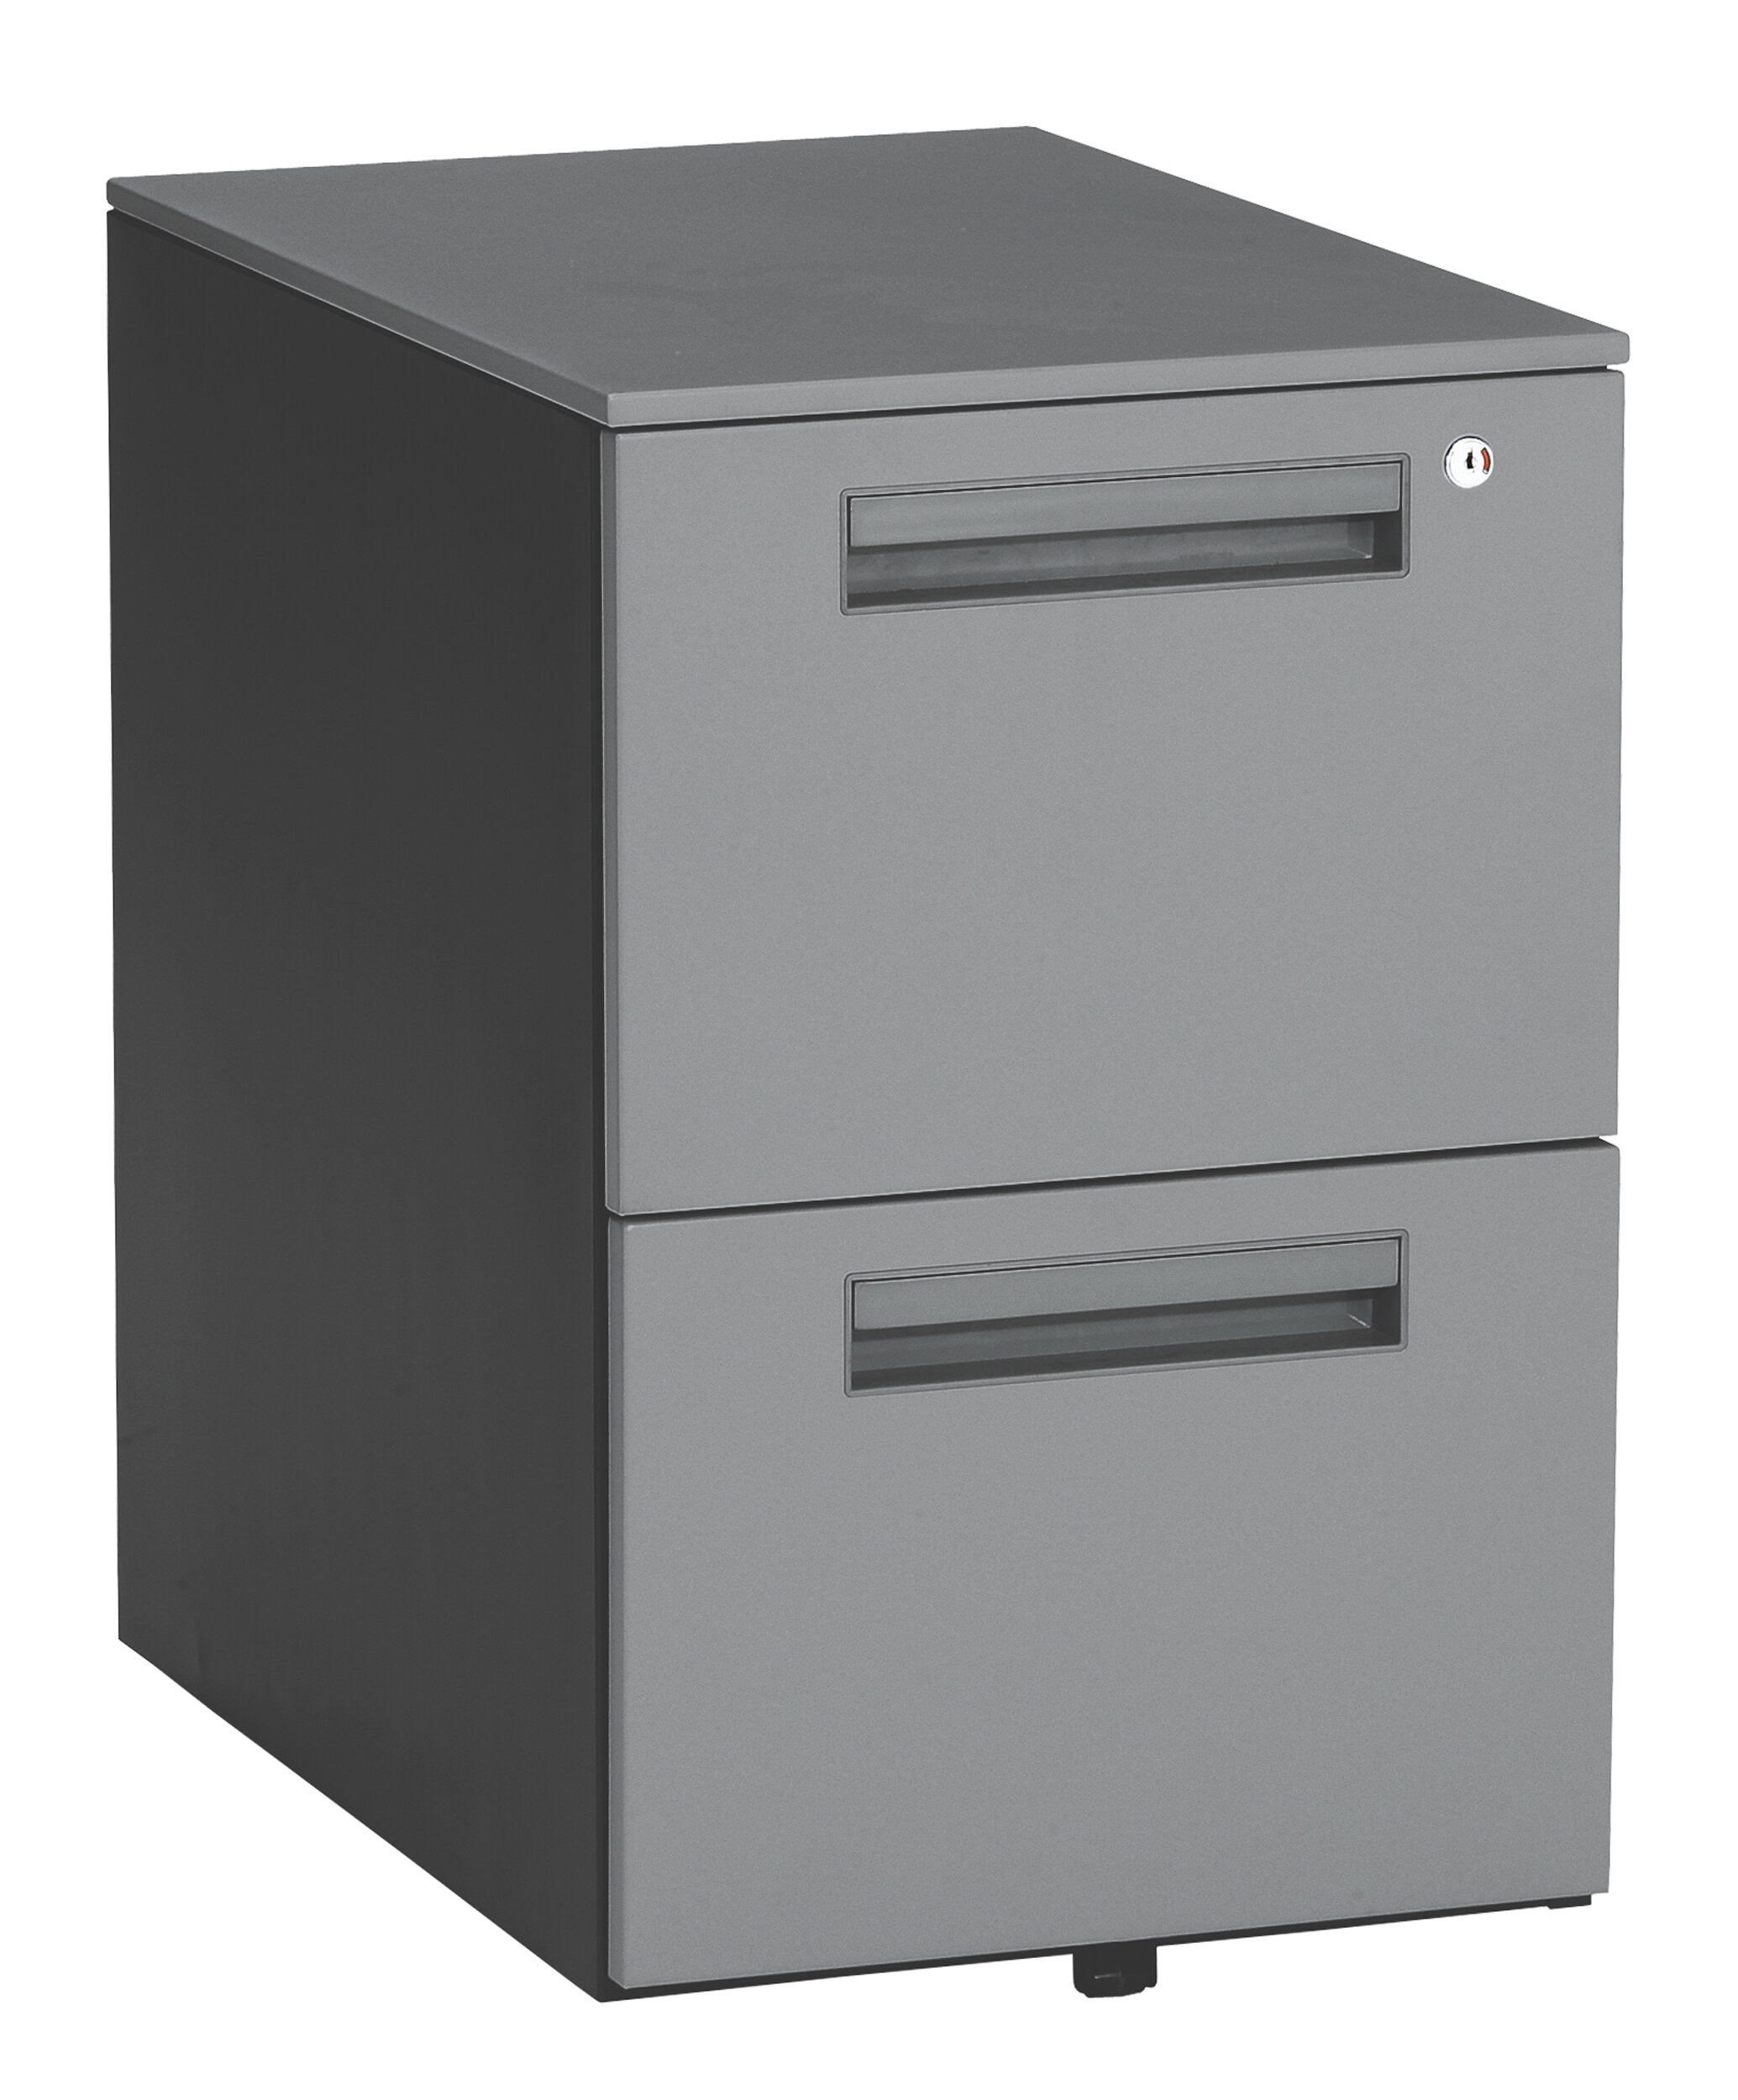 OFM Executive Series 2 Drawer Mobile Pedestal File Cabinet U0026 Reviews |  Wayfair